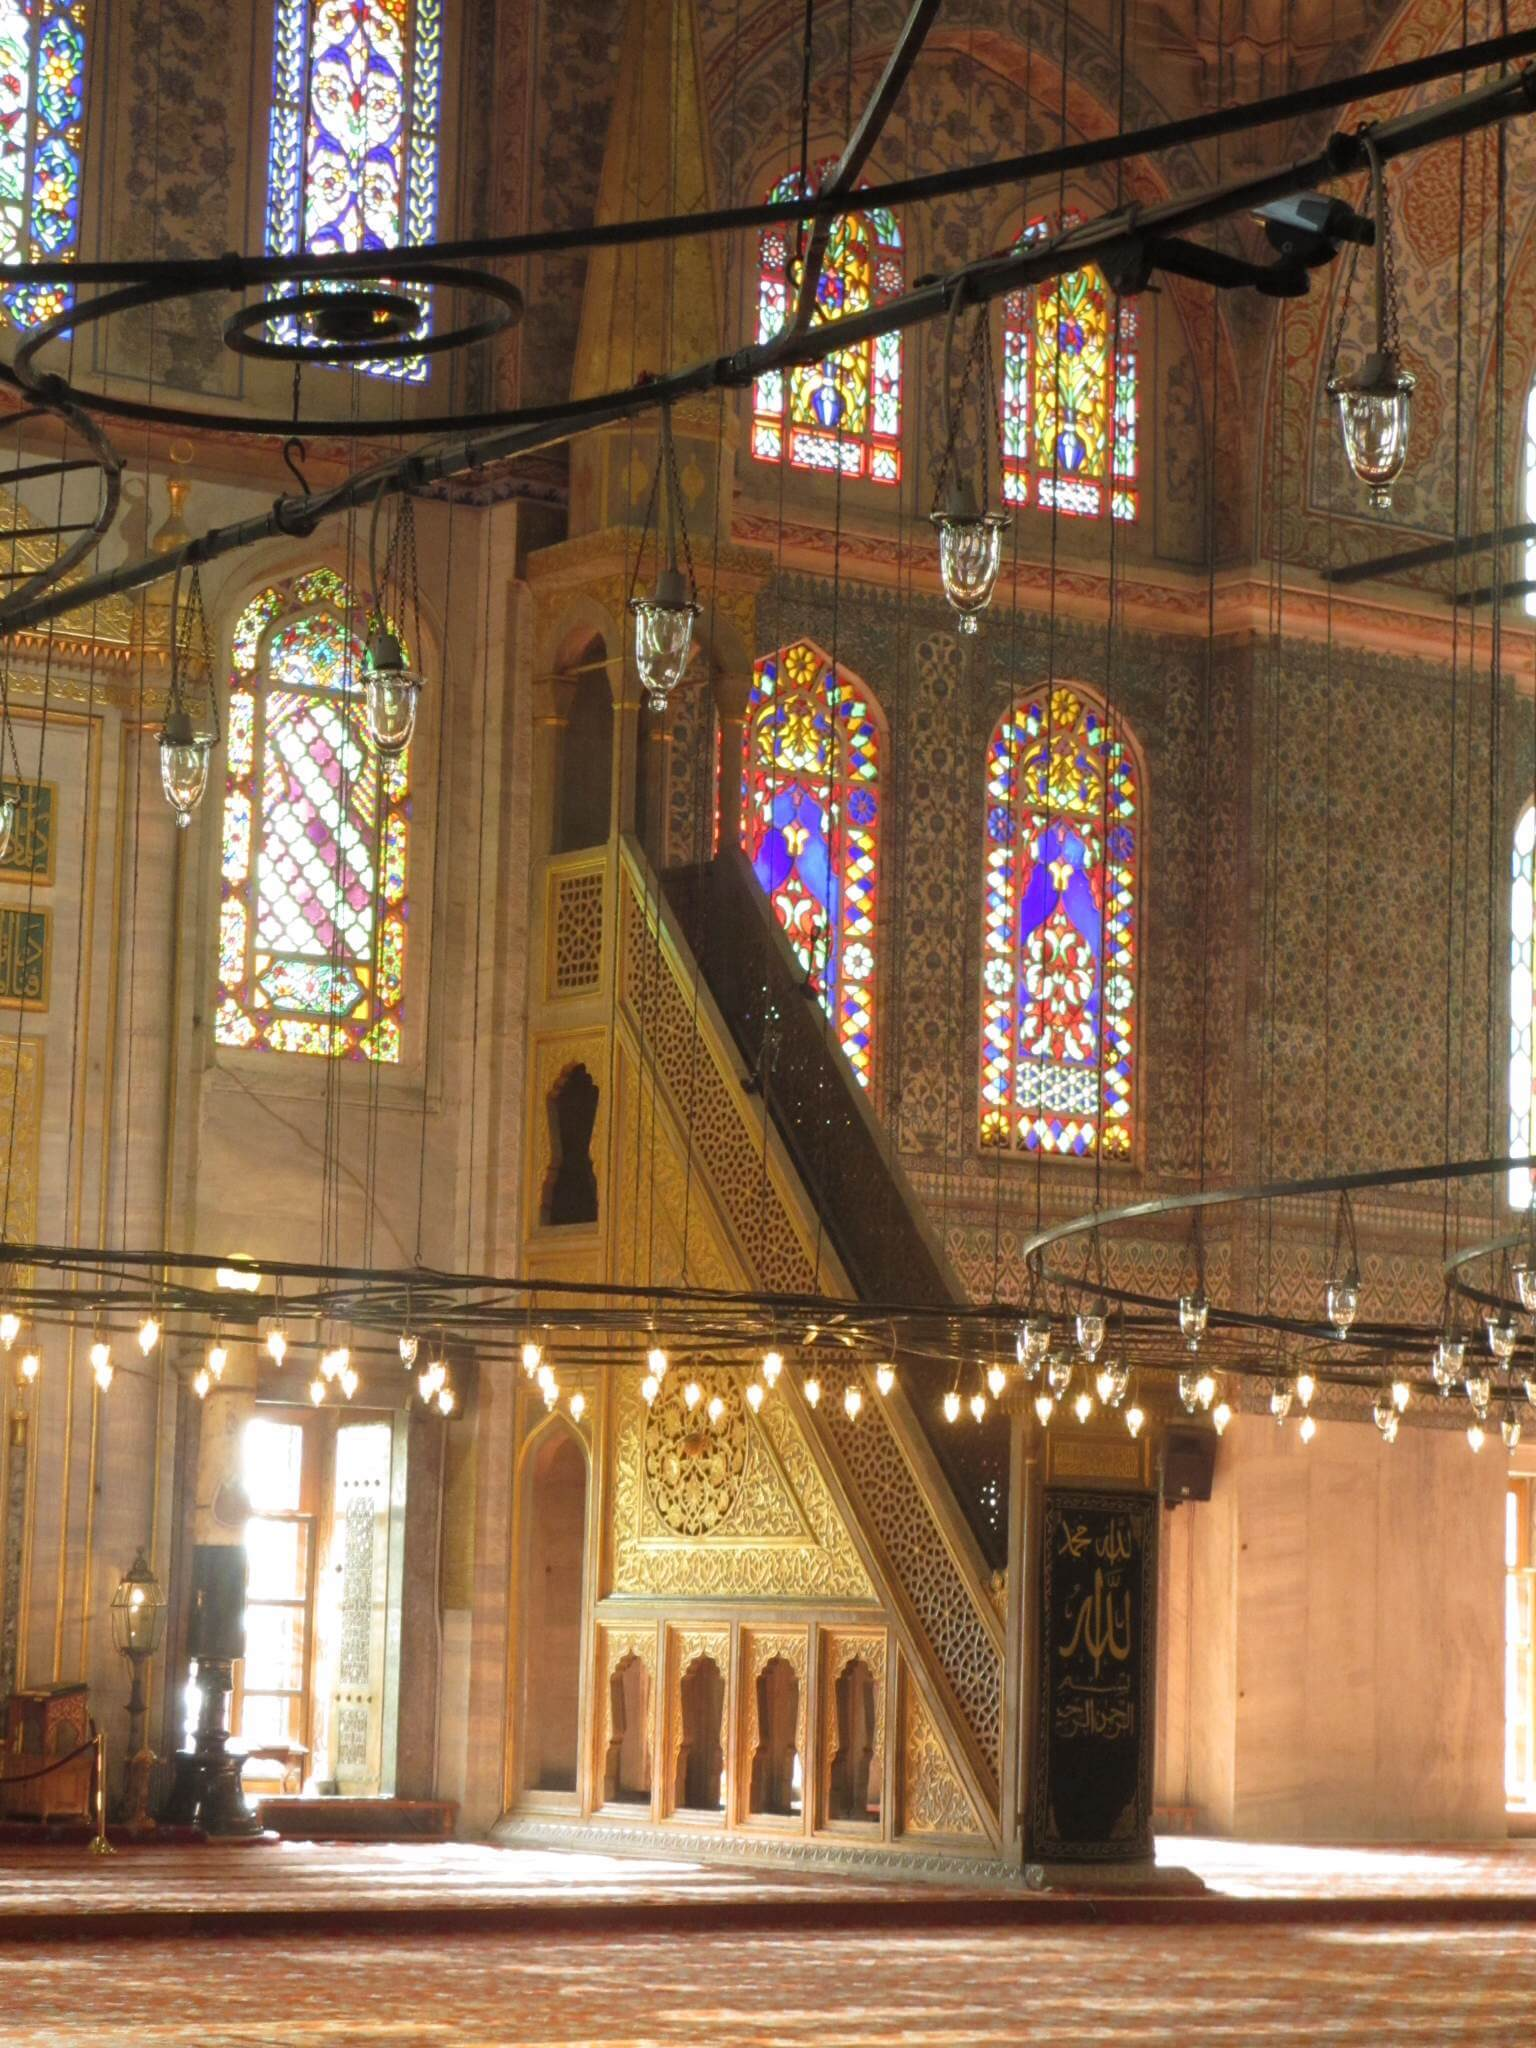 Close up of the Blue Mosque interior